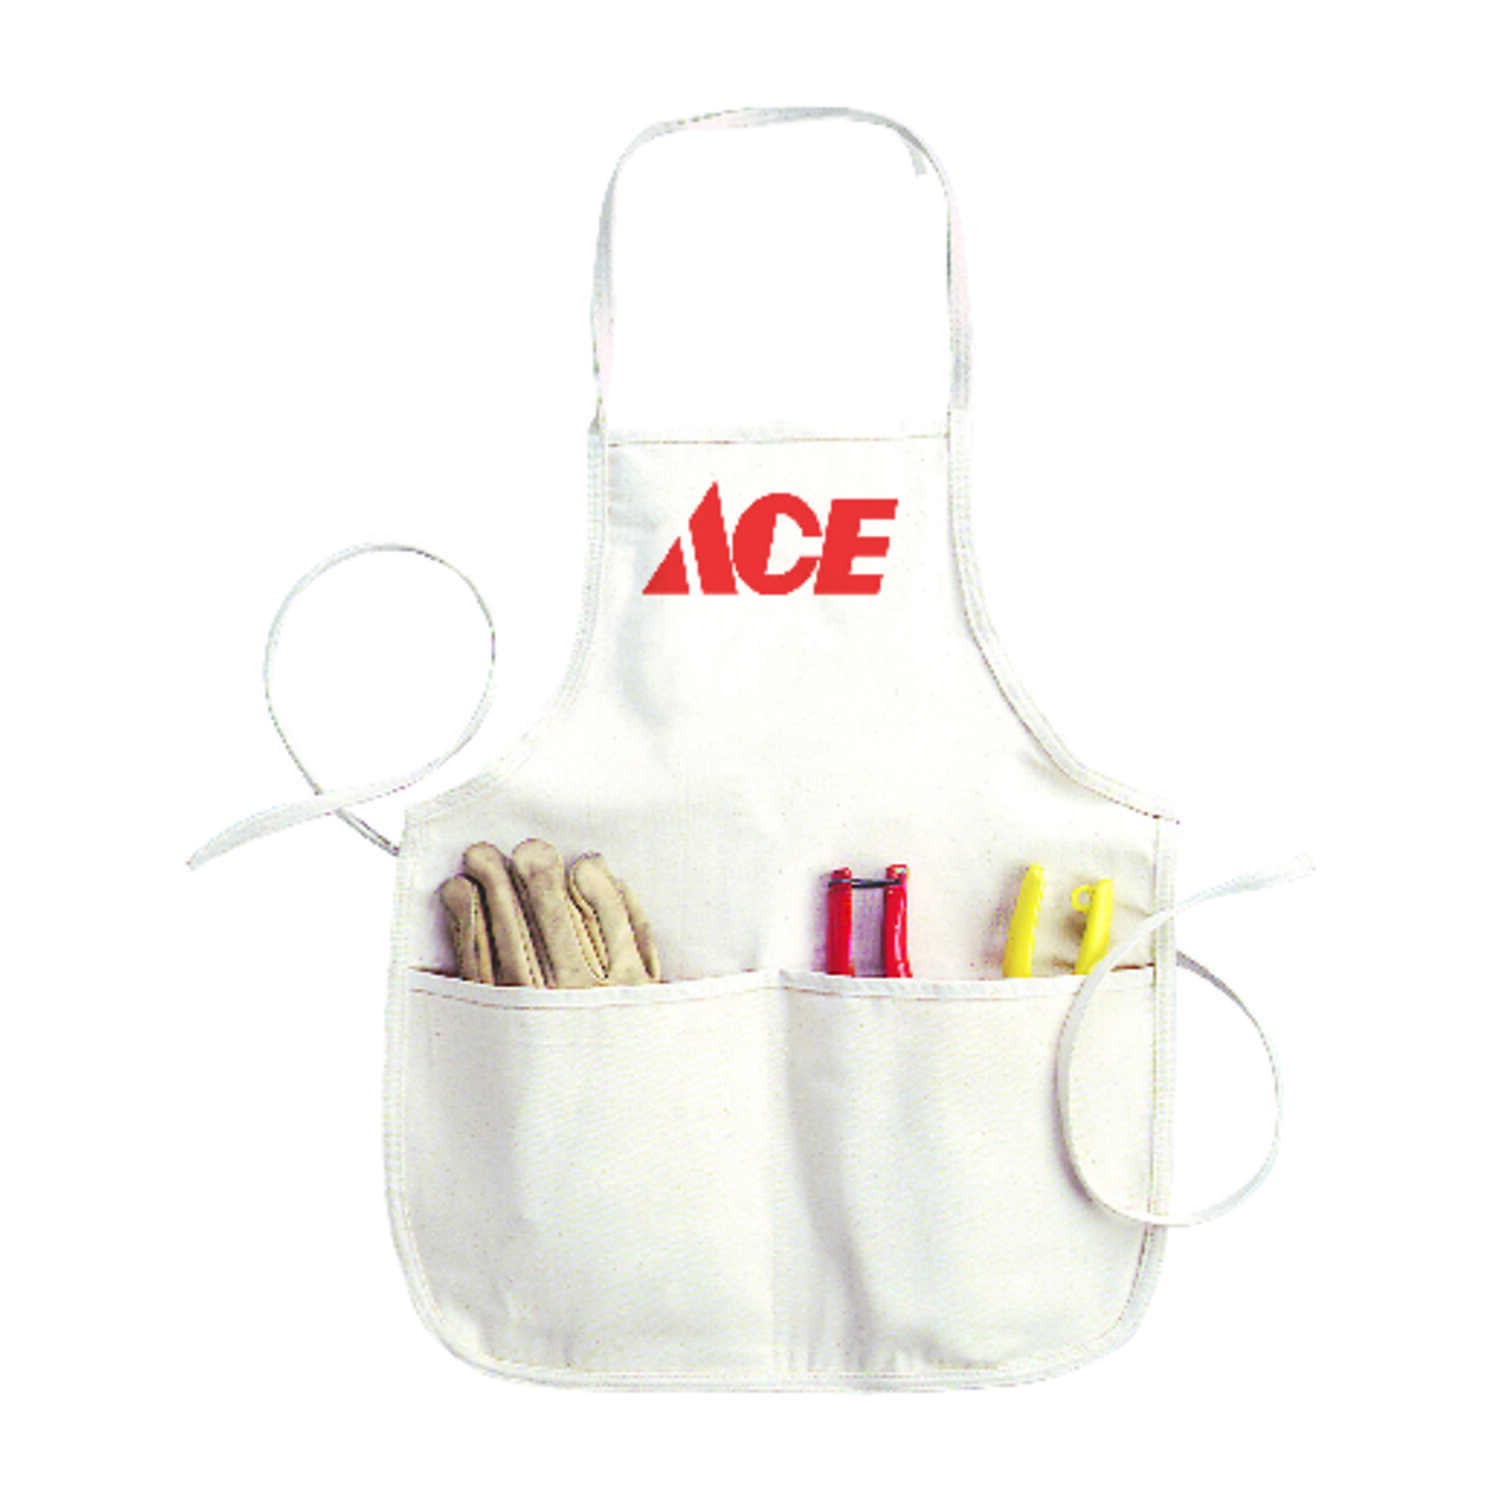 Ace  Heavy Duty 4 pocket Cotton  Bib Apron  White  1 pk